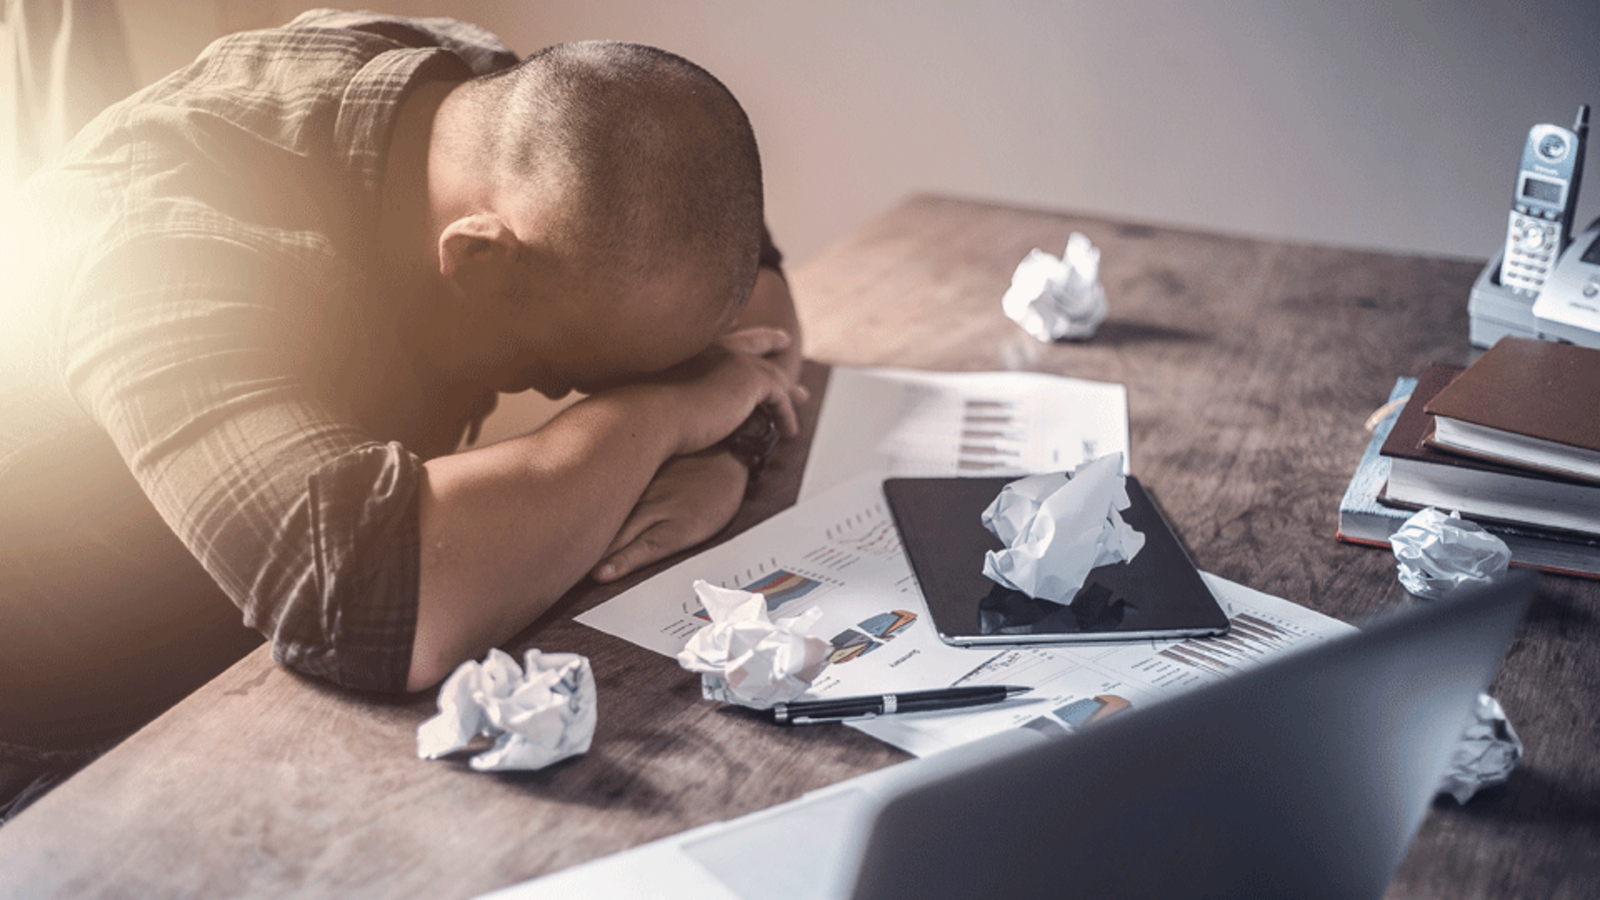 According to Bayt.com's 'Work Satisfaction in the MENA' poll, a whopping 74.1% of professionals in the MENA region are stressed by their jobs, with 34.8% affirming that their stress is ongoing. (Shutterstock)